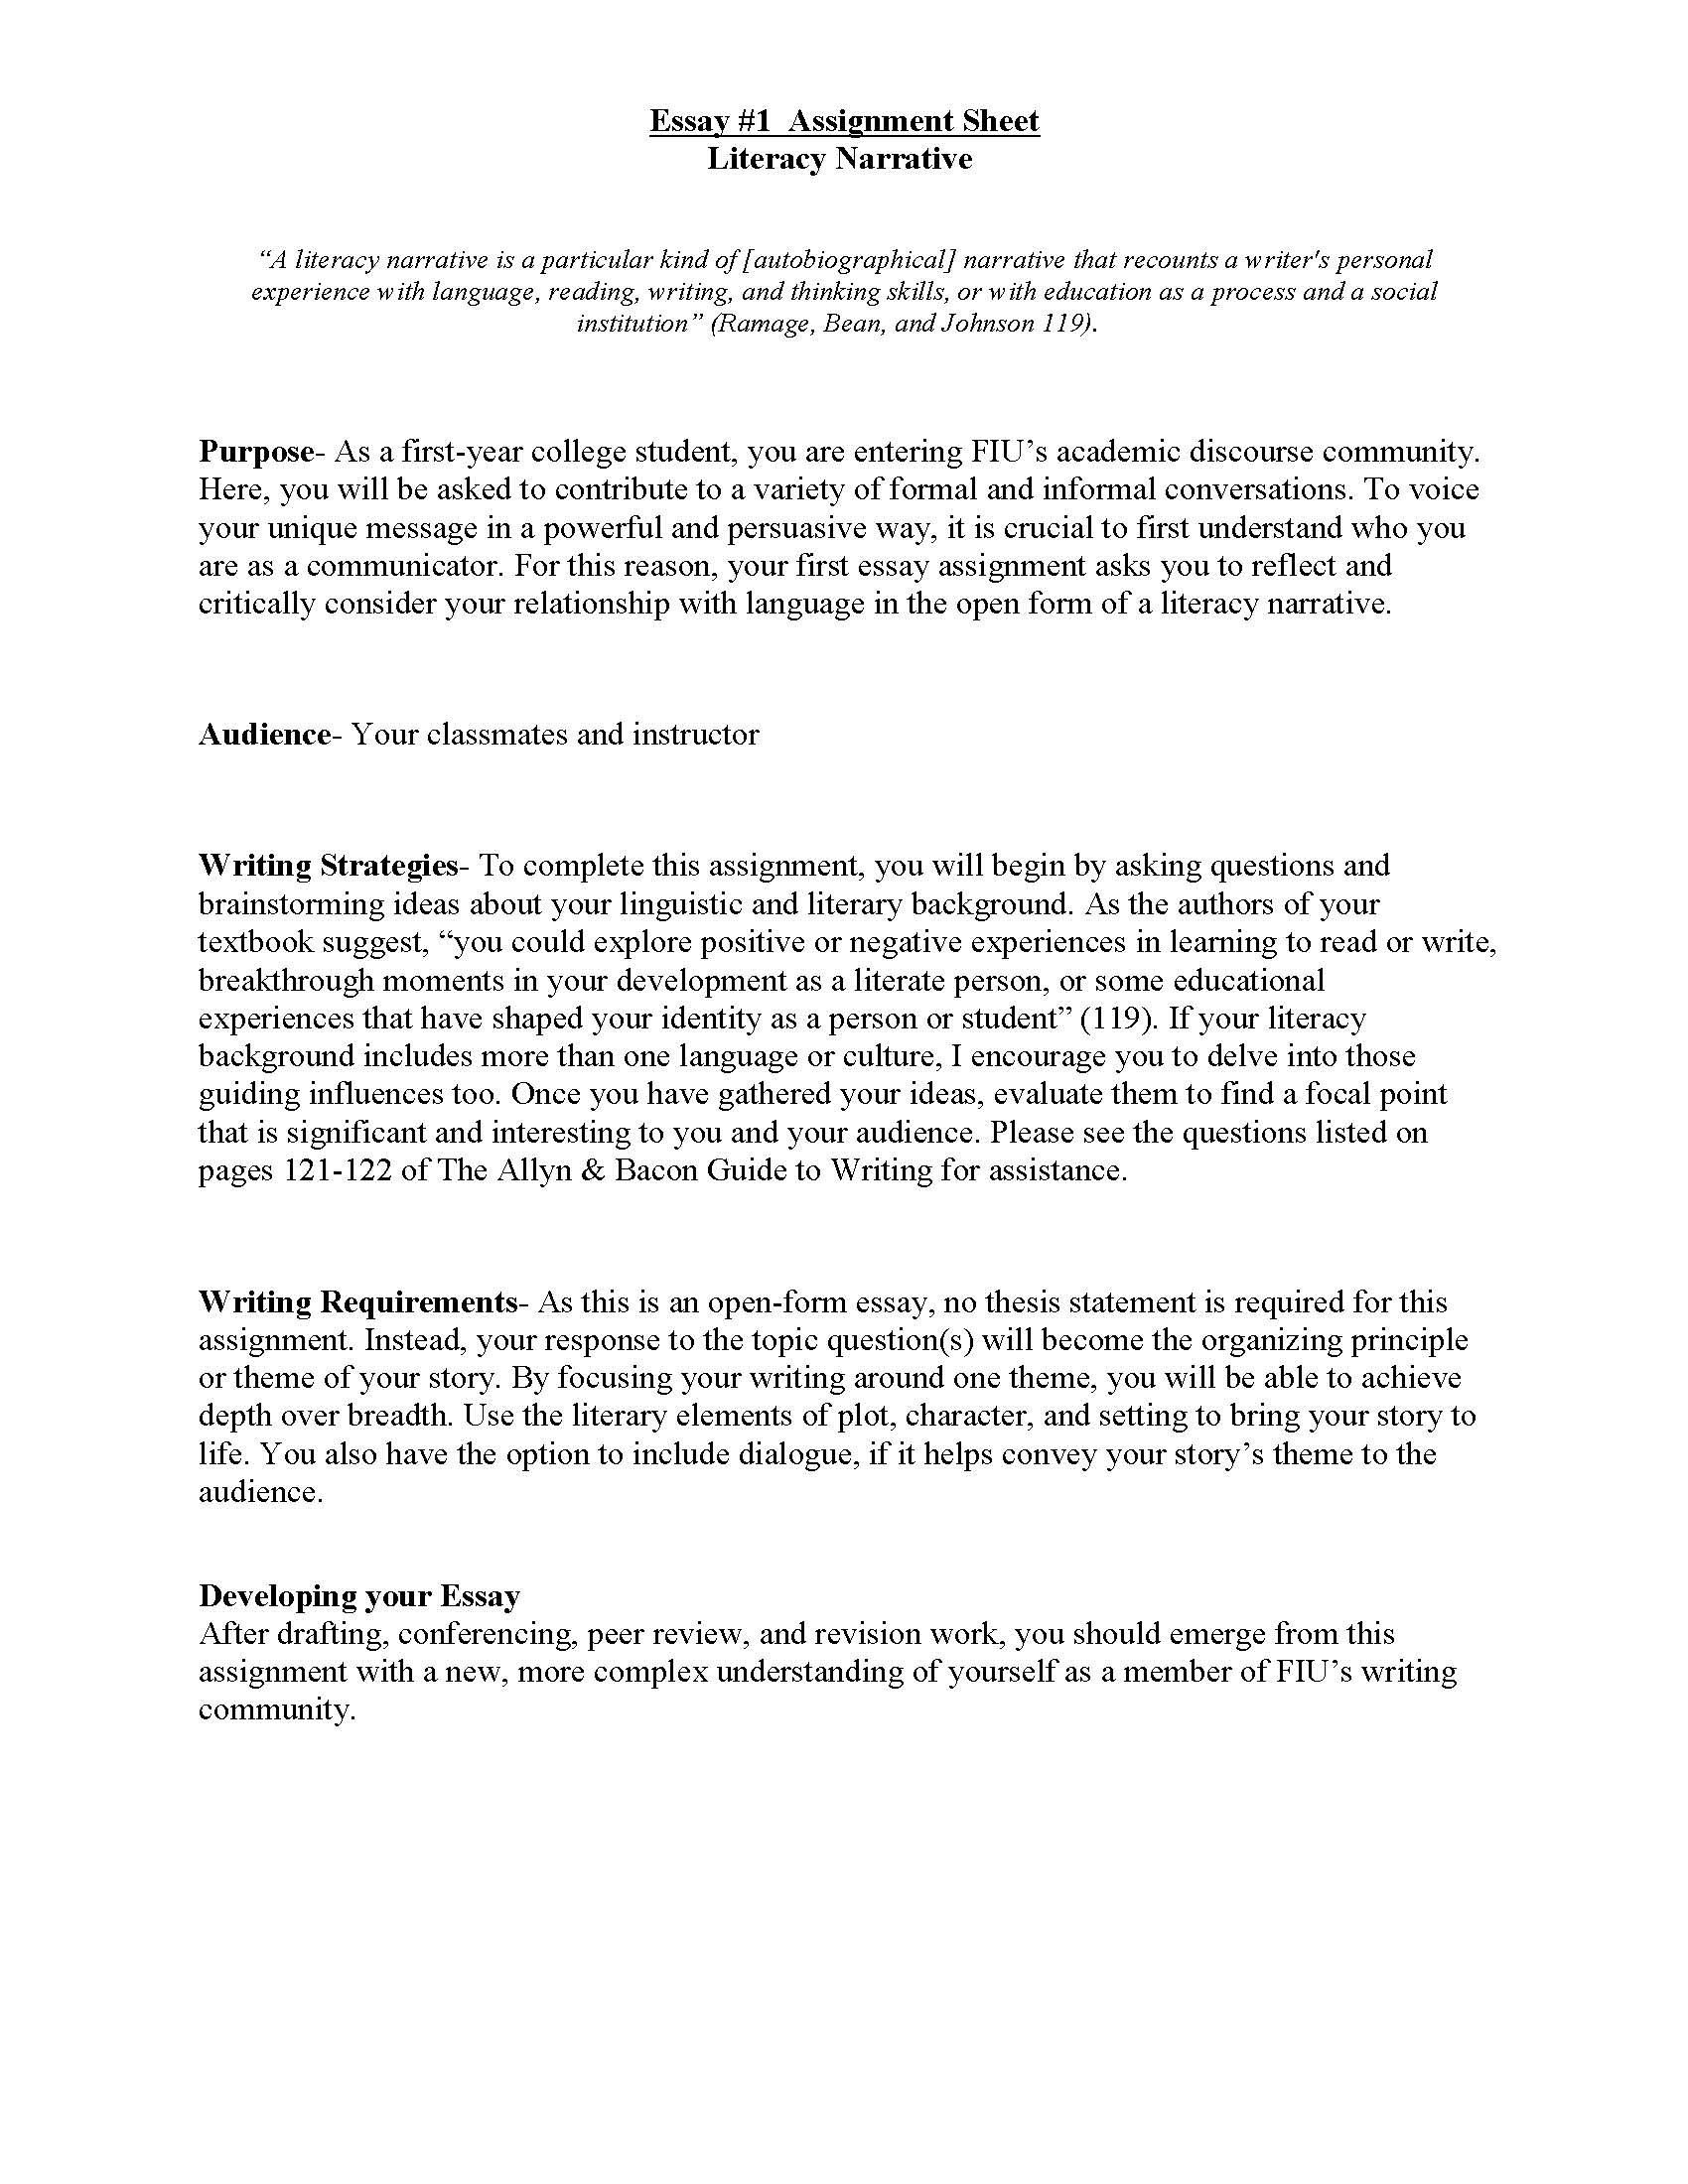 013 Essay Example Literacy Narrative Unitssignment Spring 2012 Page 1 Writing Amazing A About Being Judged Quizlet Powerpoint Full